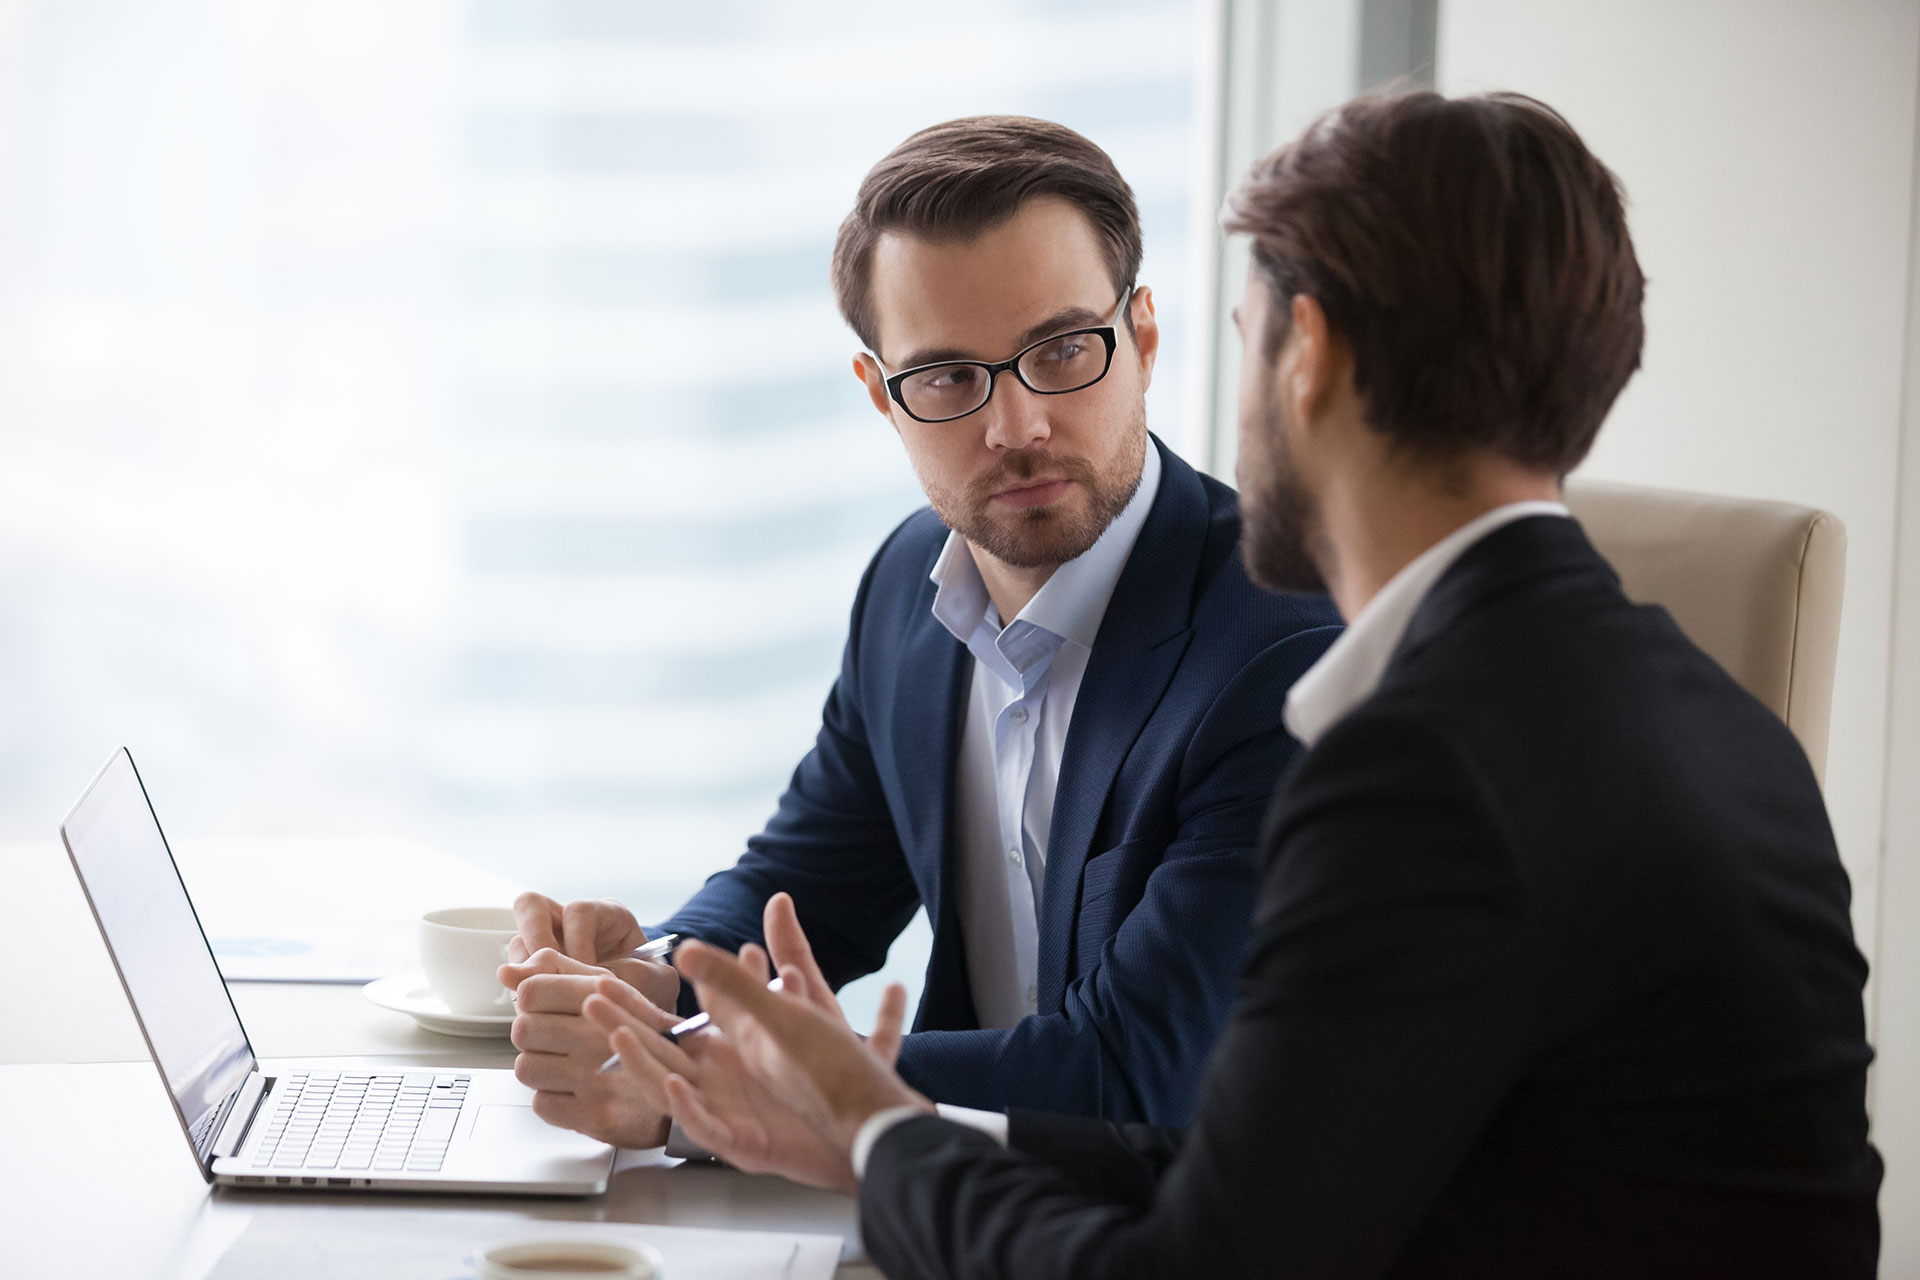 You need partners you can trust when conducting due diligence and deails